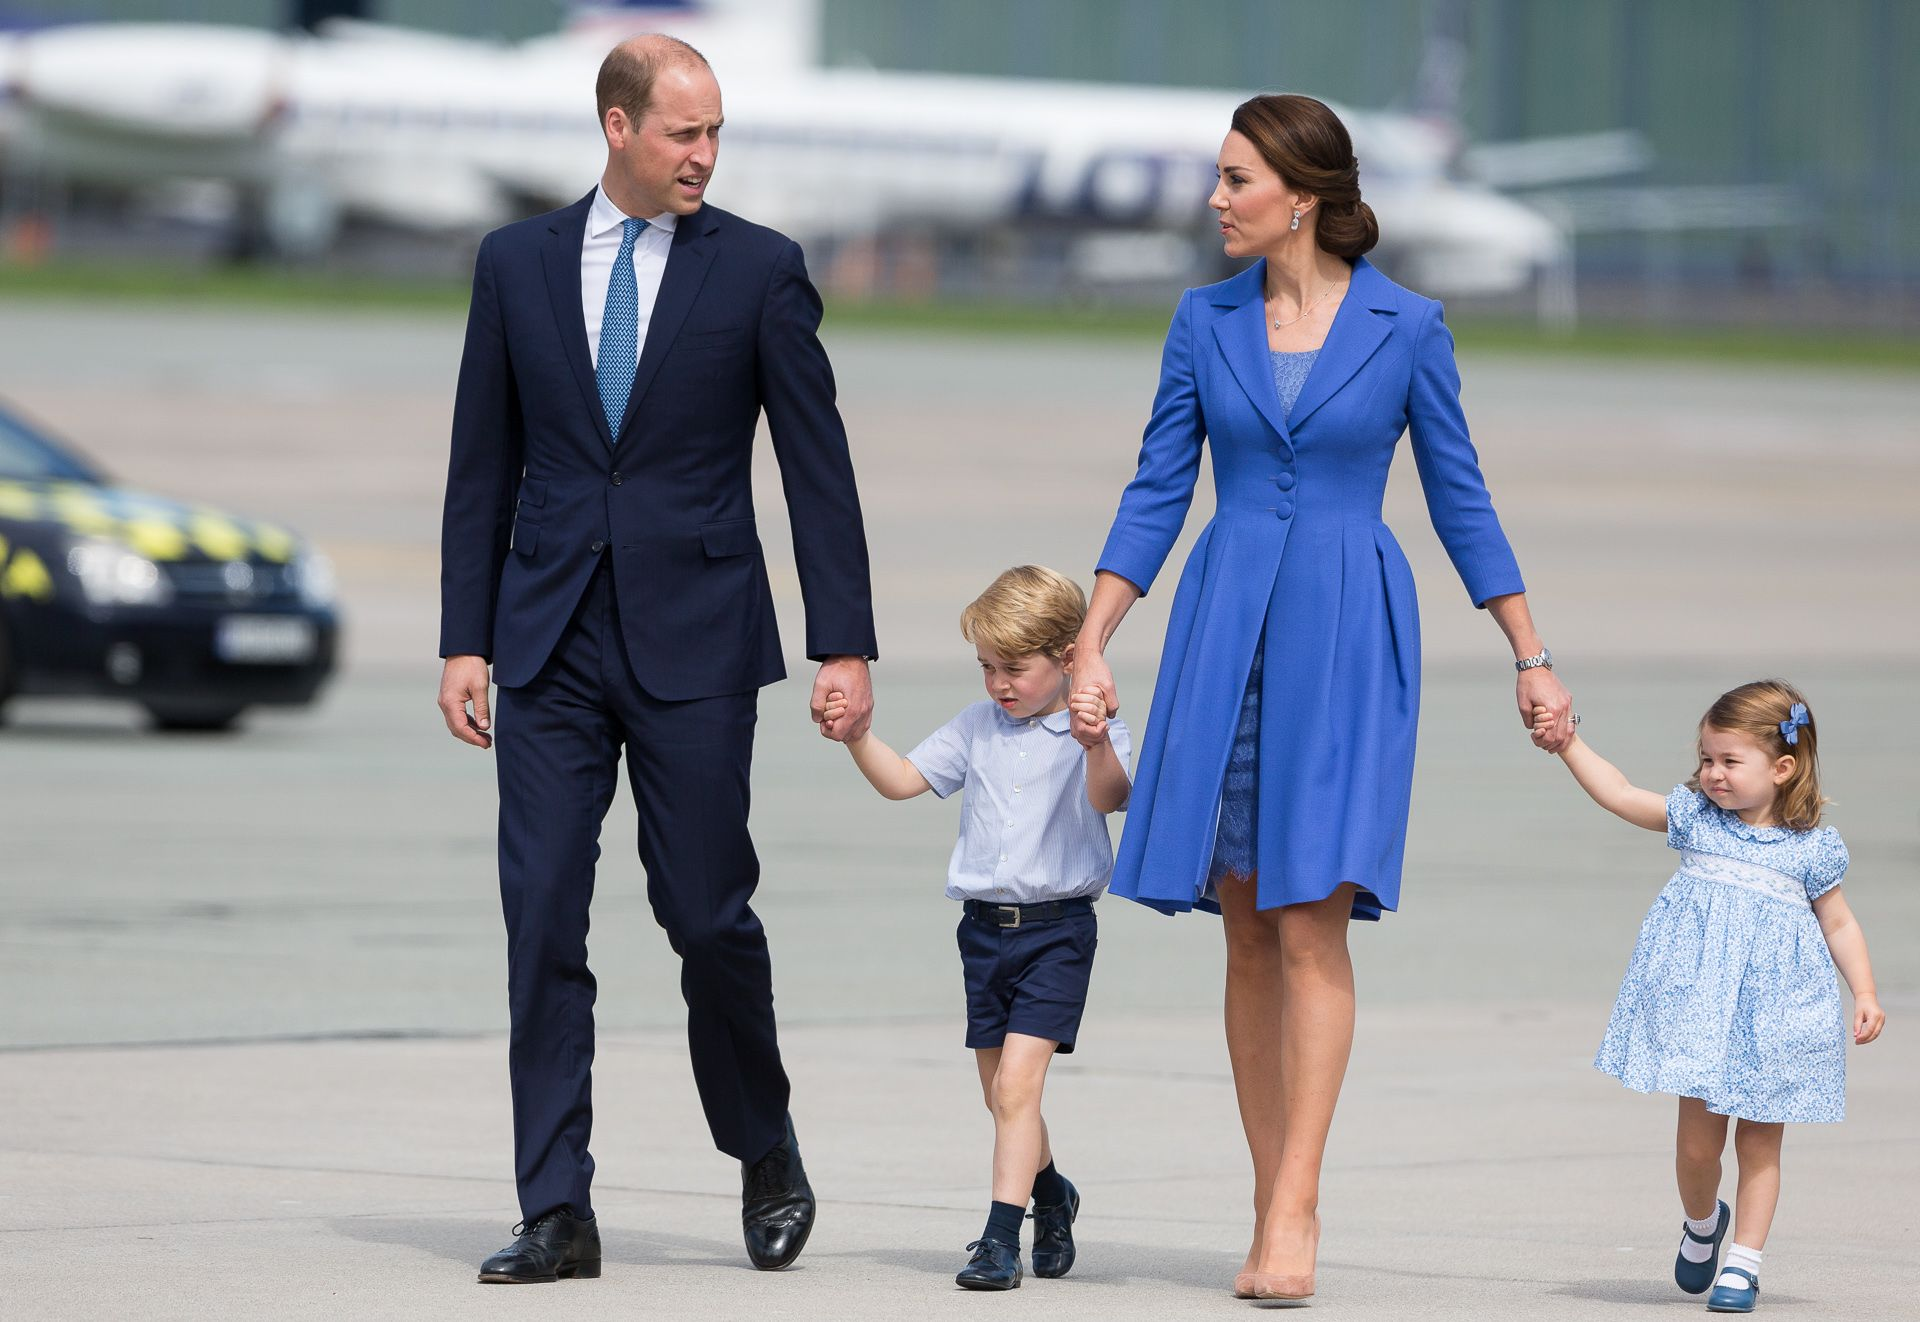 The Duke and Duchess of Cambridge take their children on holiday to visit the Queen in Balmoral